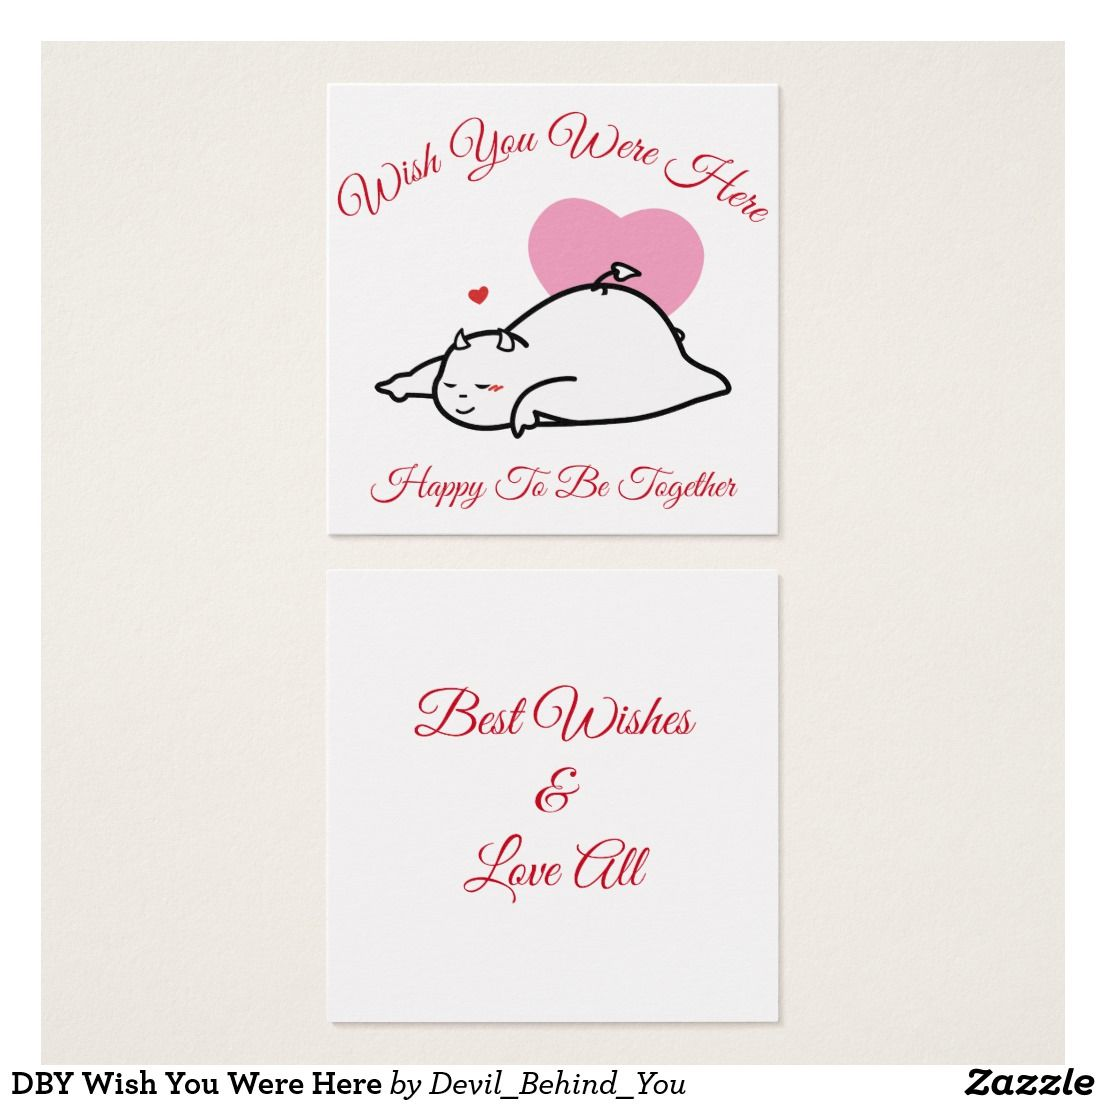 Dby Wish You Were Here Business Cards